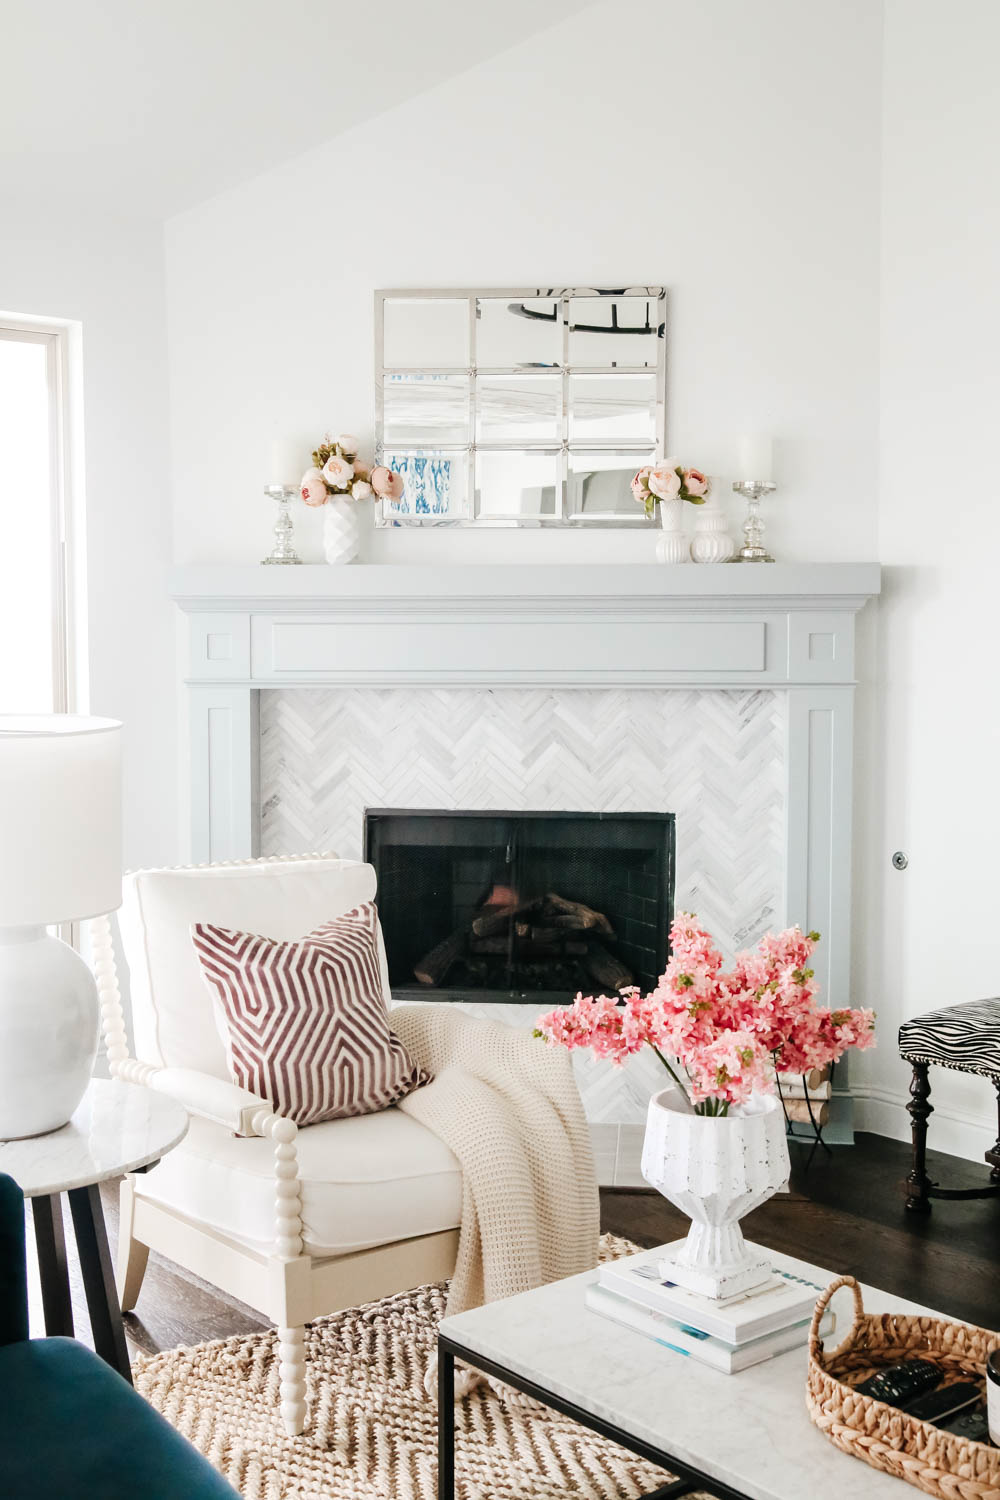 Light grey blue painted fireplace mantle with white spindle chair and lavender home decor accents. #livingroominspo #hometour #fireplacemantle #springhometour #ABlissfulNest